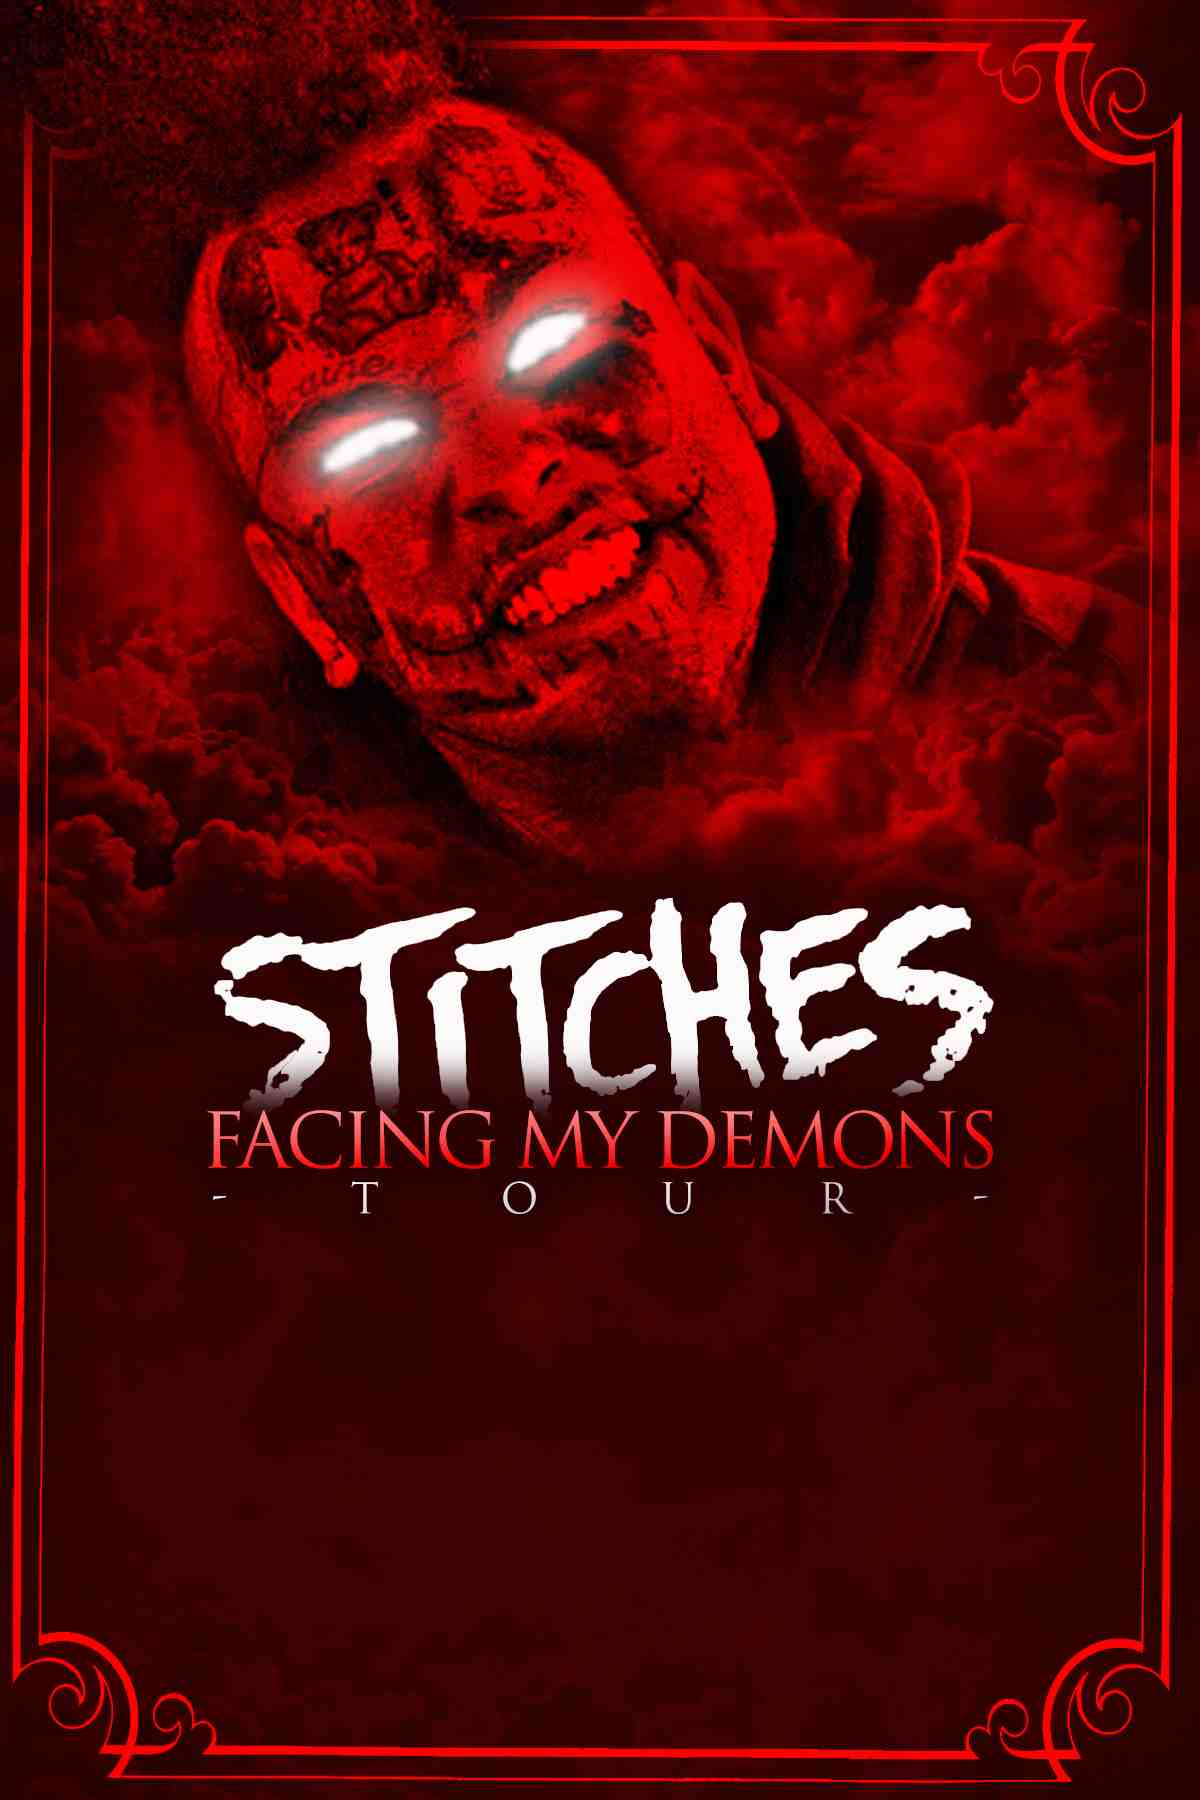 STITCHES & Special Guests Live In Ottawa 11/06